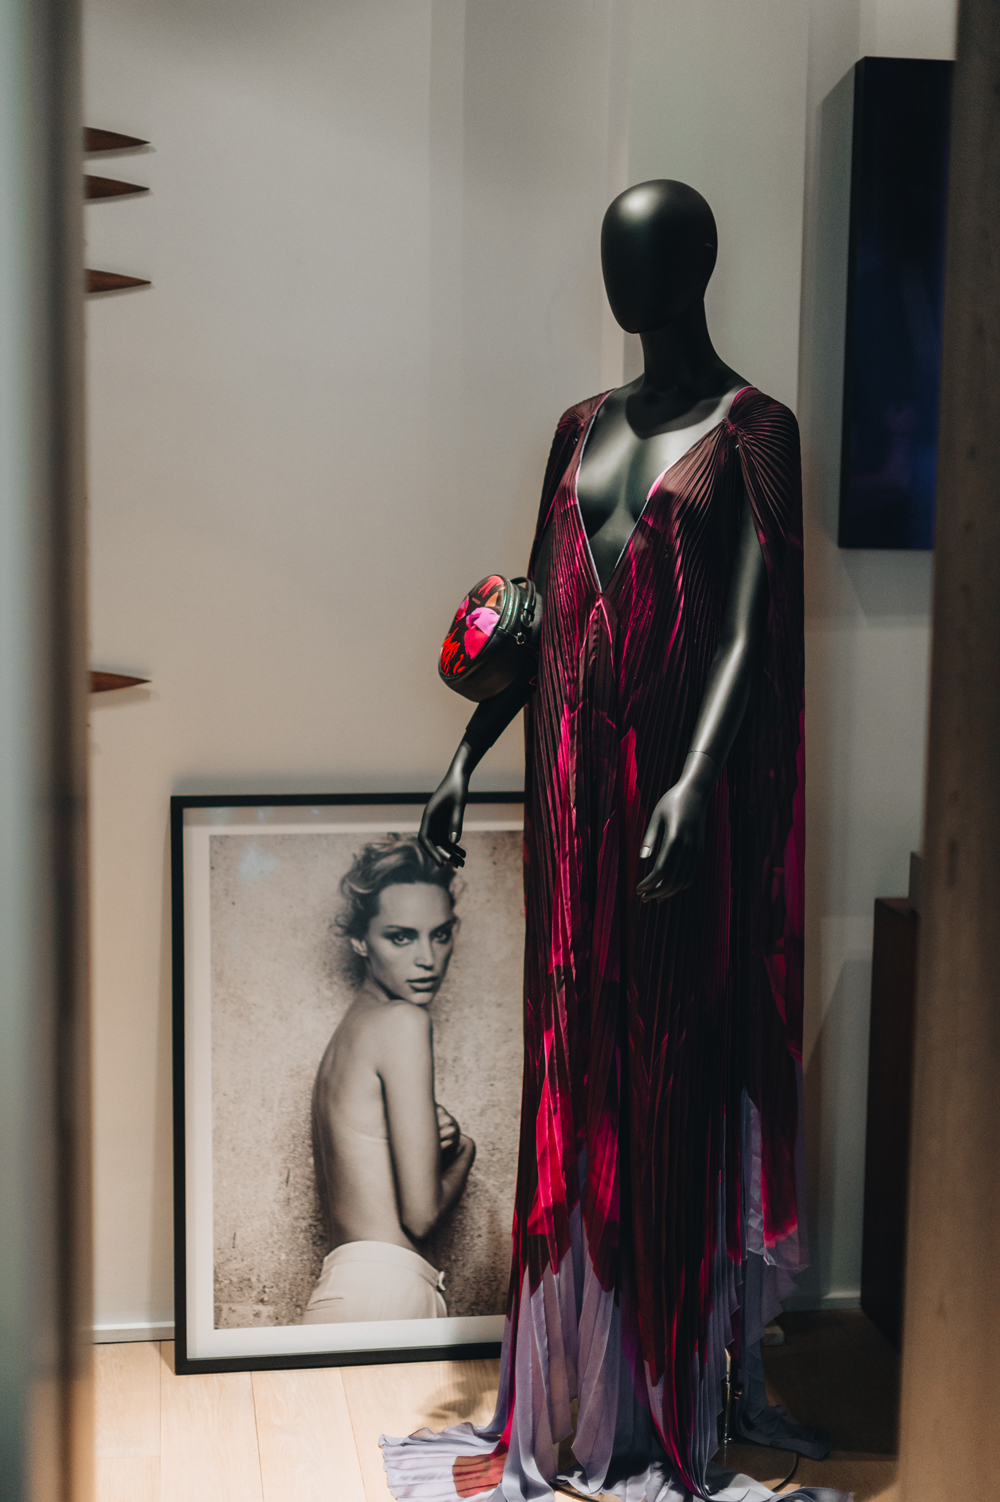 Photo of Inna taken by Peter Lindbergh and an Innangelo kaftan on the mannequin